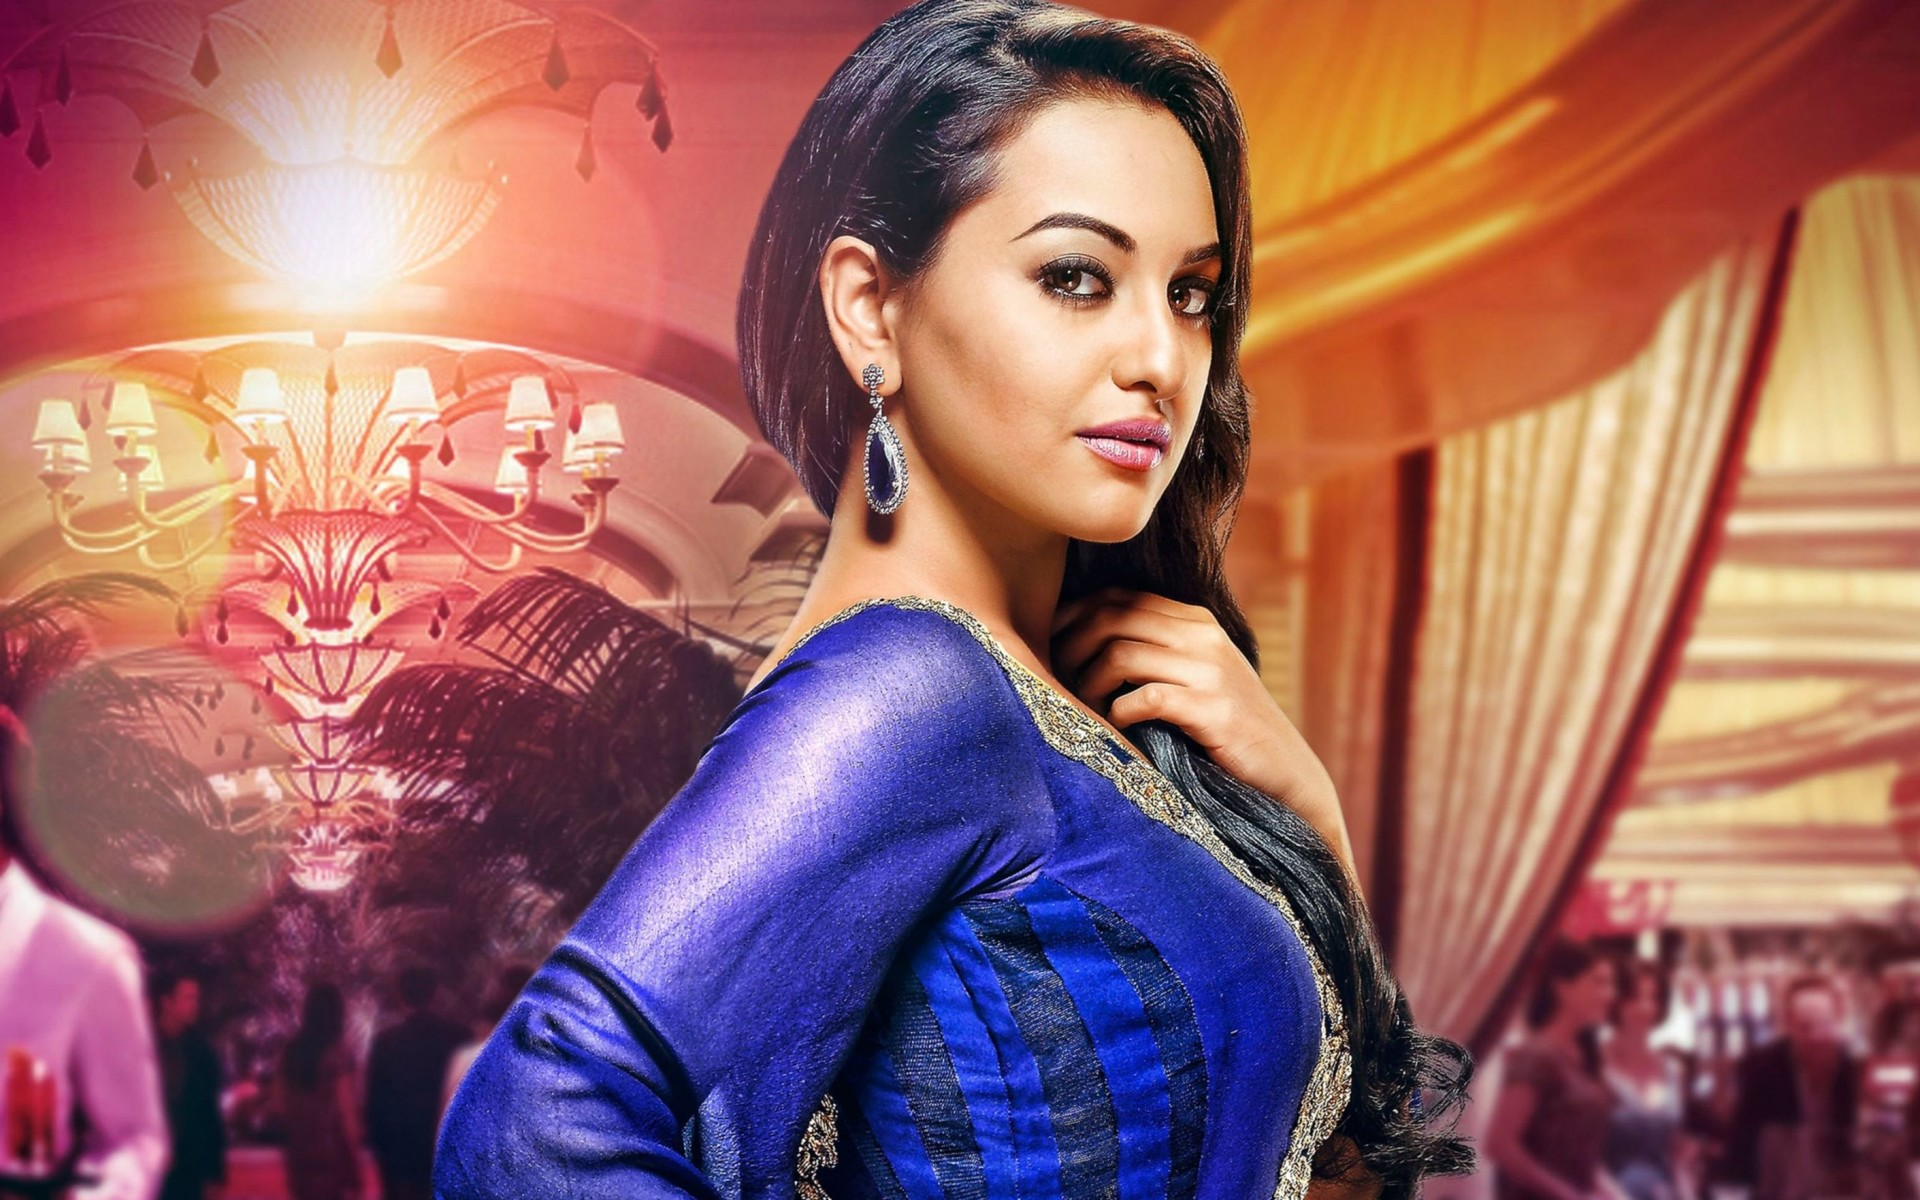 Indian Actress Sonakshi Sinha Wallpaper